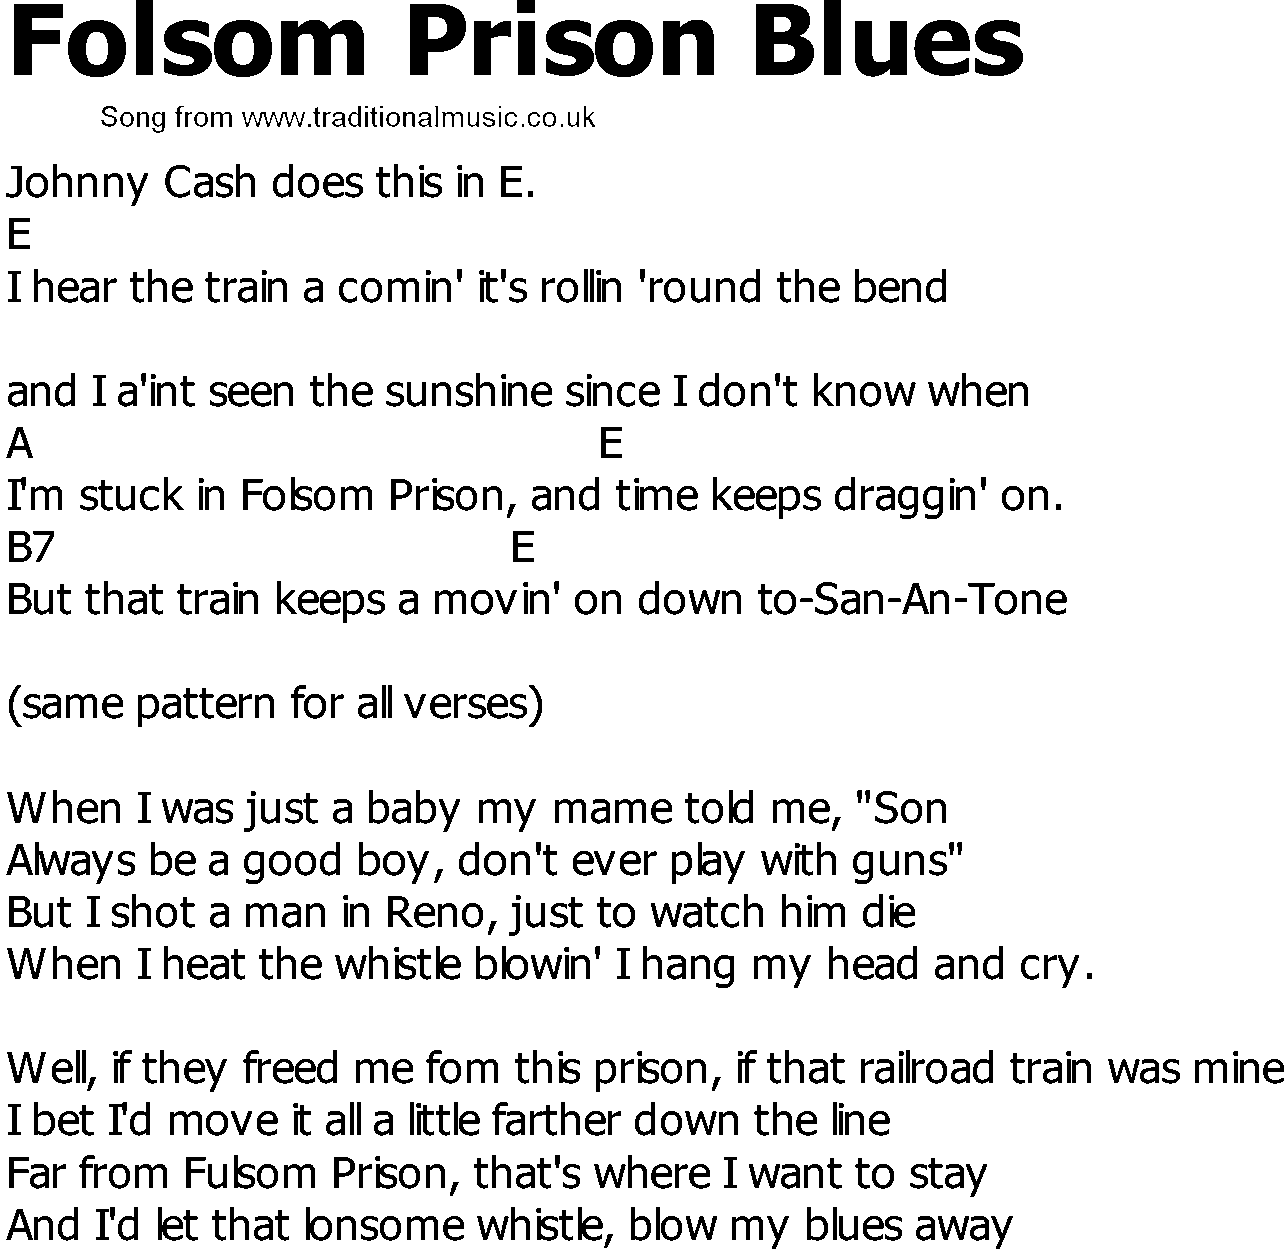 Old Country song lyrics with chords - Folsom Prison Blues